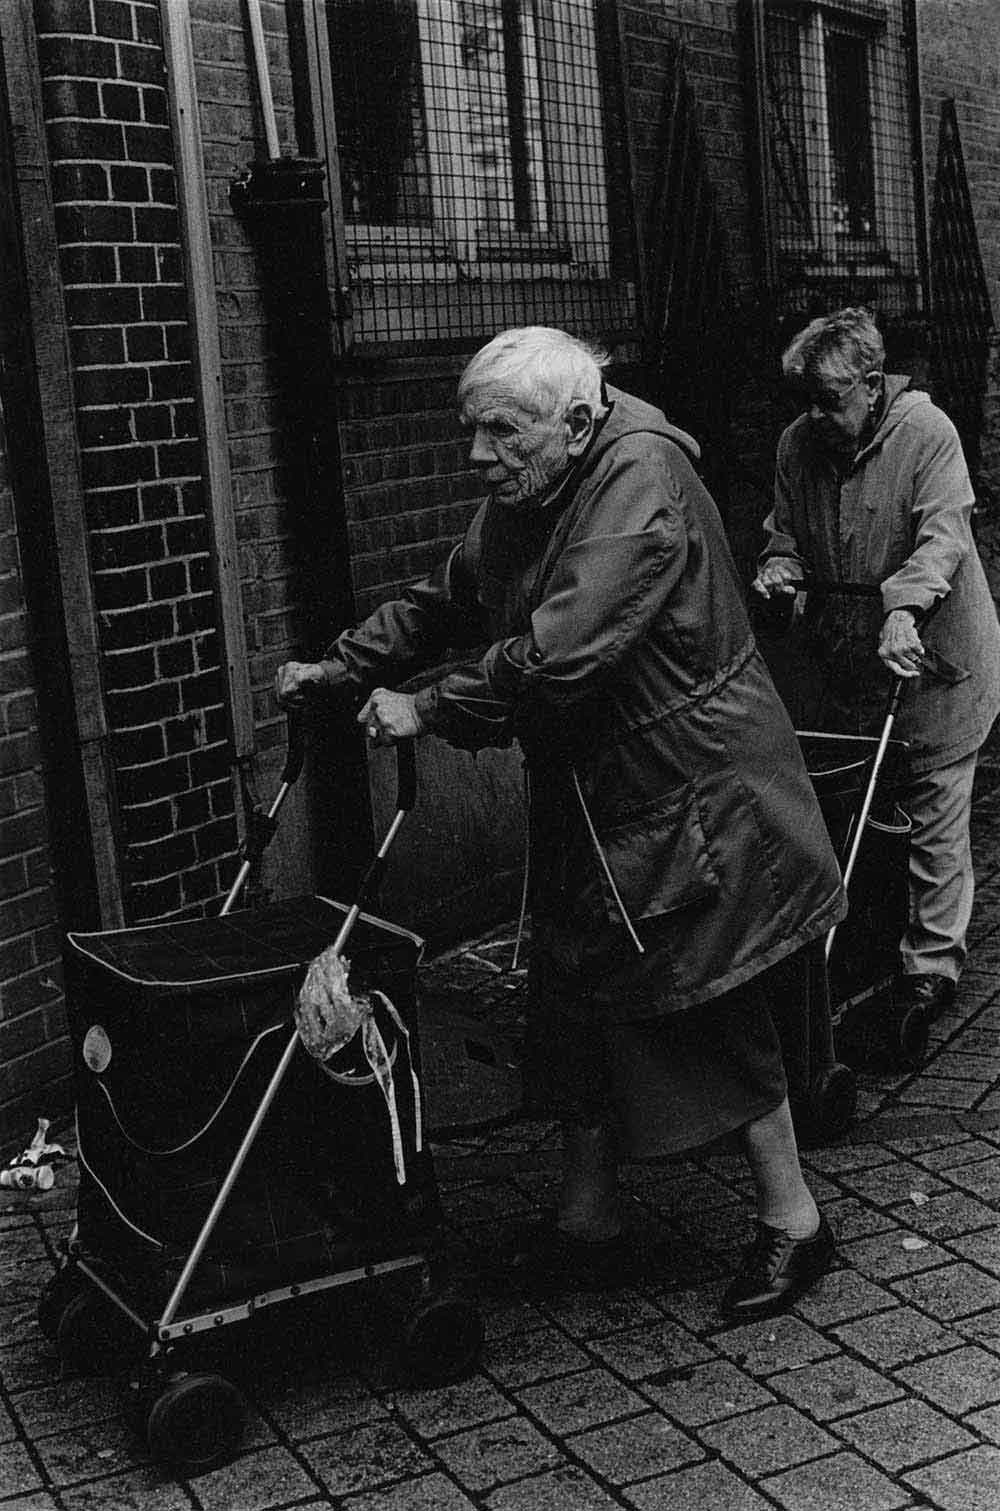 Two elderly women pushing shopping trolleys, part of a series of photographs by Stephie Devred that captures the unique spirit of the East London street market, Roman Road Market.